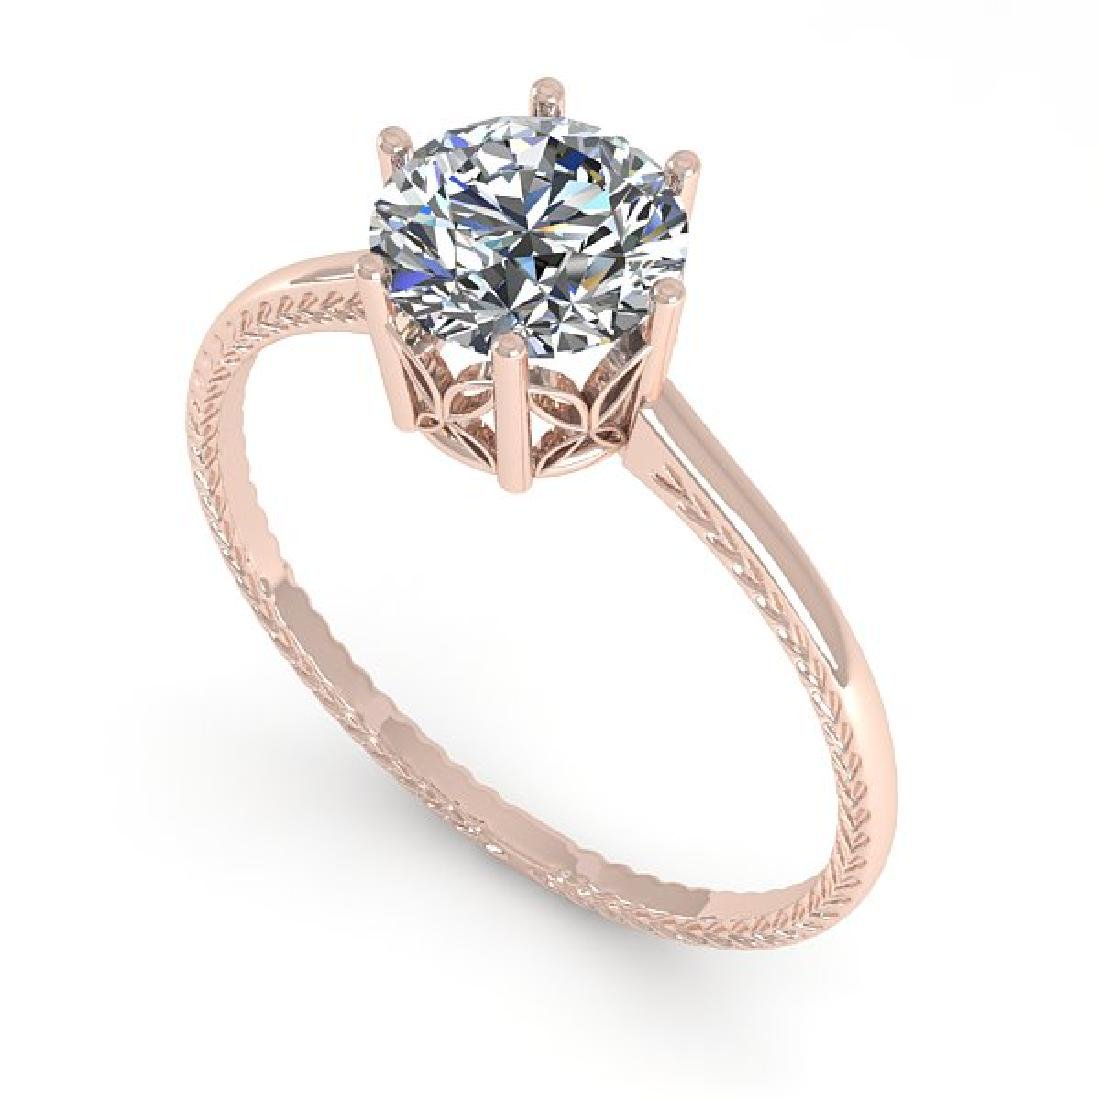 1.0 CTW VS/SI Diamond Art Deco Ring 14K Rose Gold - 2